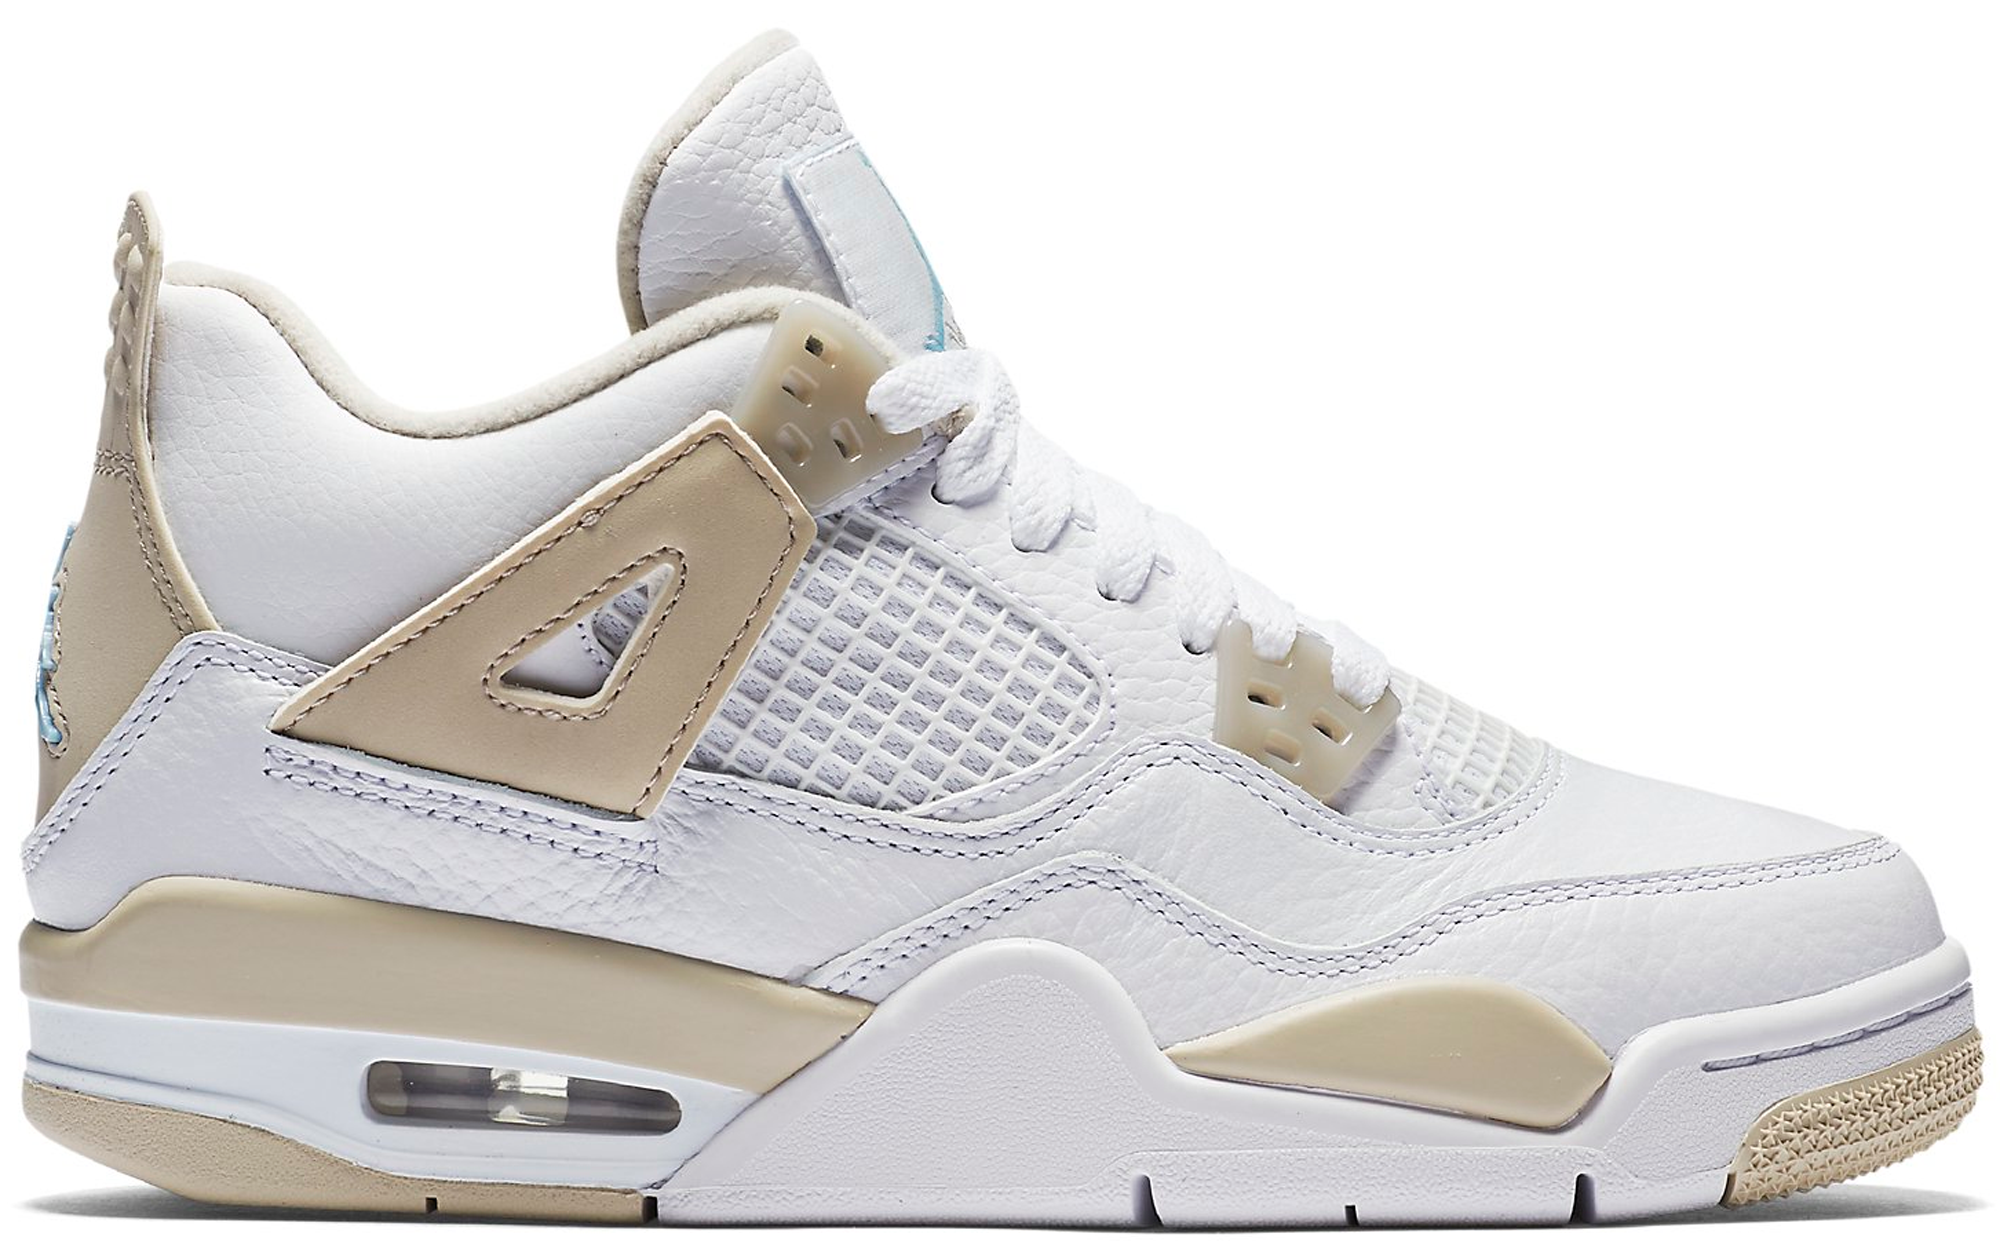 f6ed3aed191d5a Air Jordan 4 Retro Light Sand 2017 (GS) - StockX News